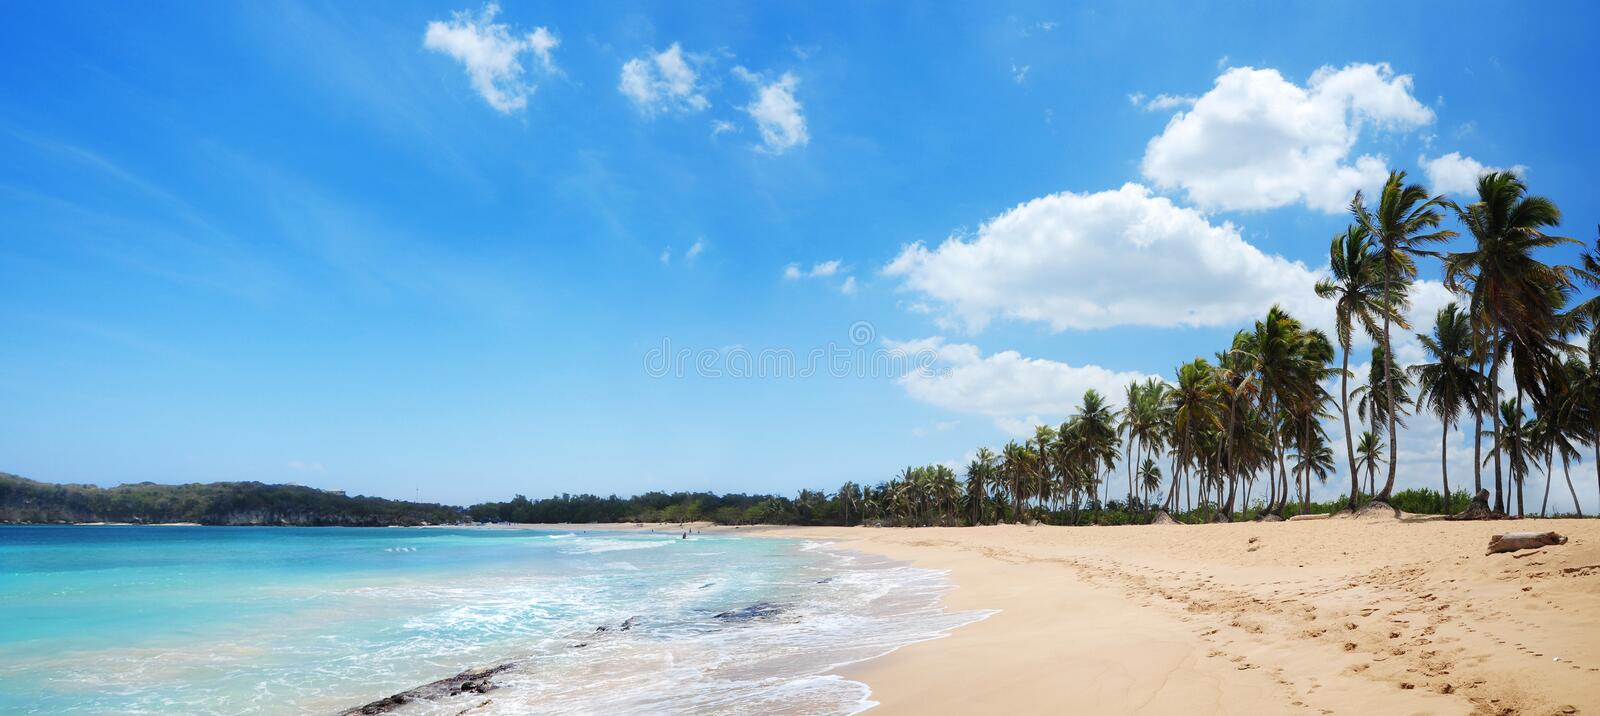 Exotic Beach with palms and golden sands in Dominican Republic, royalty free stock image